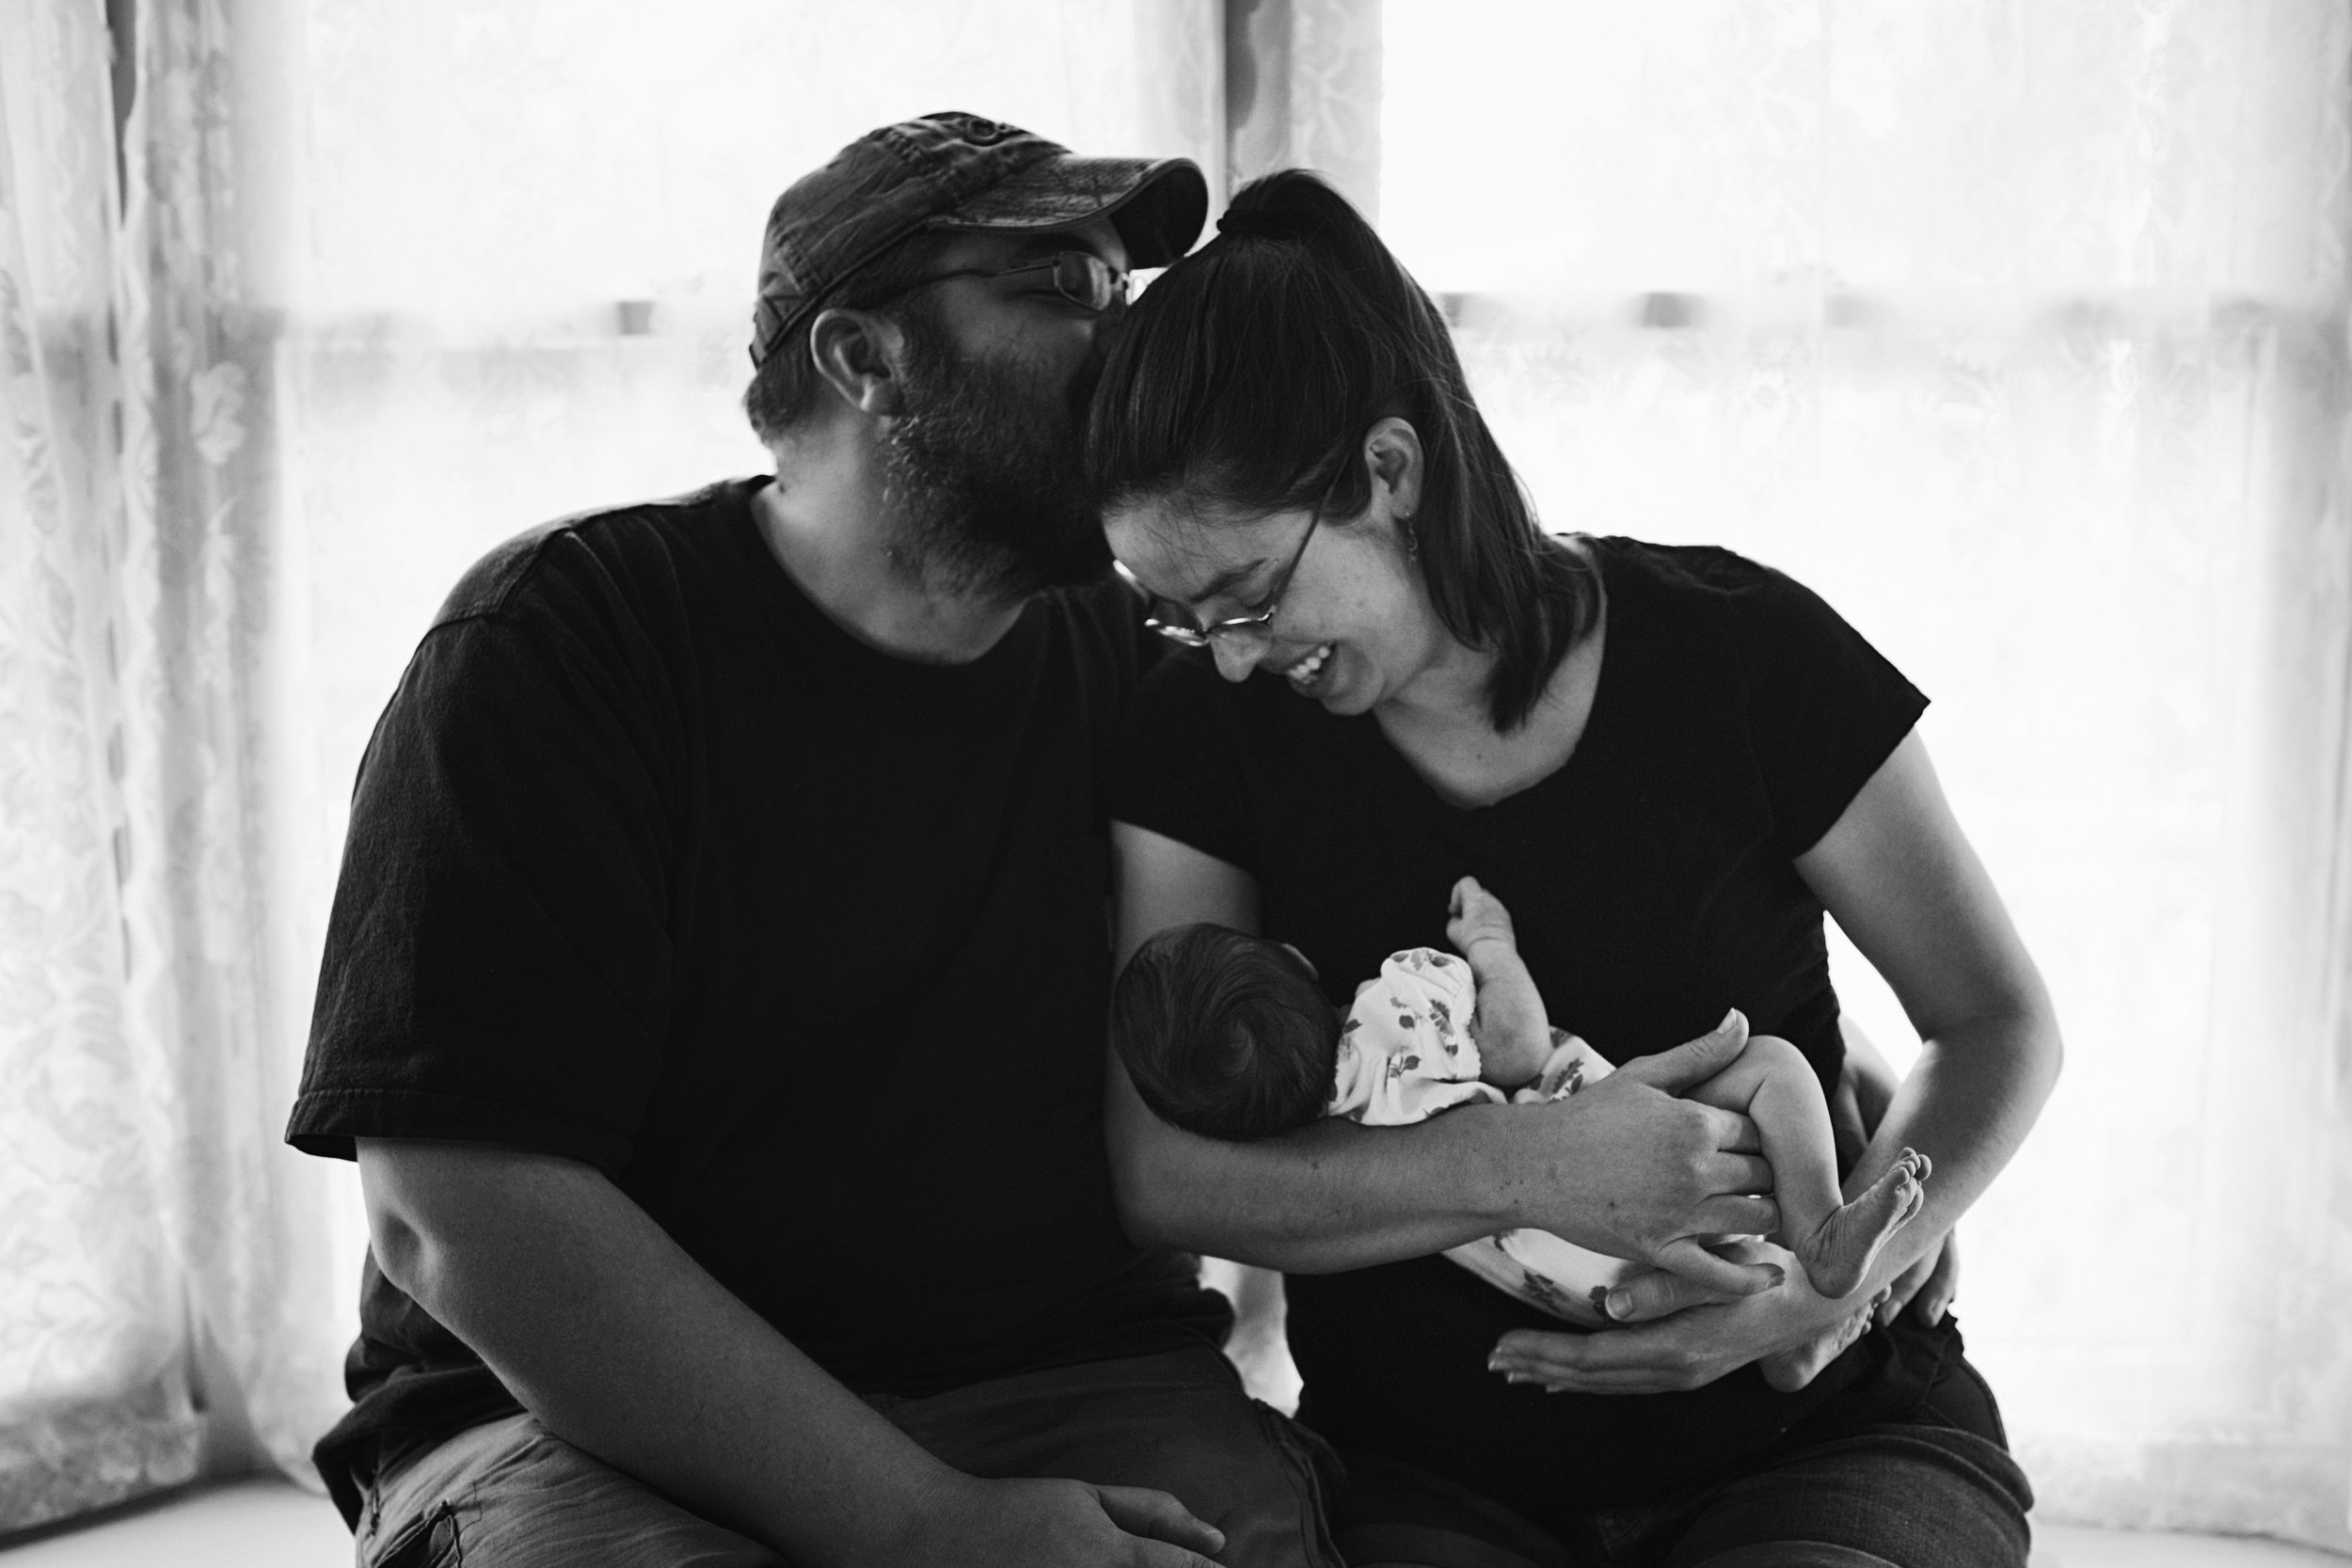 Short Pump mom and dad cuddle with their newborn at home after a brief stay in the NICU during their lifestyle newborn session.